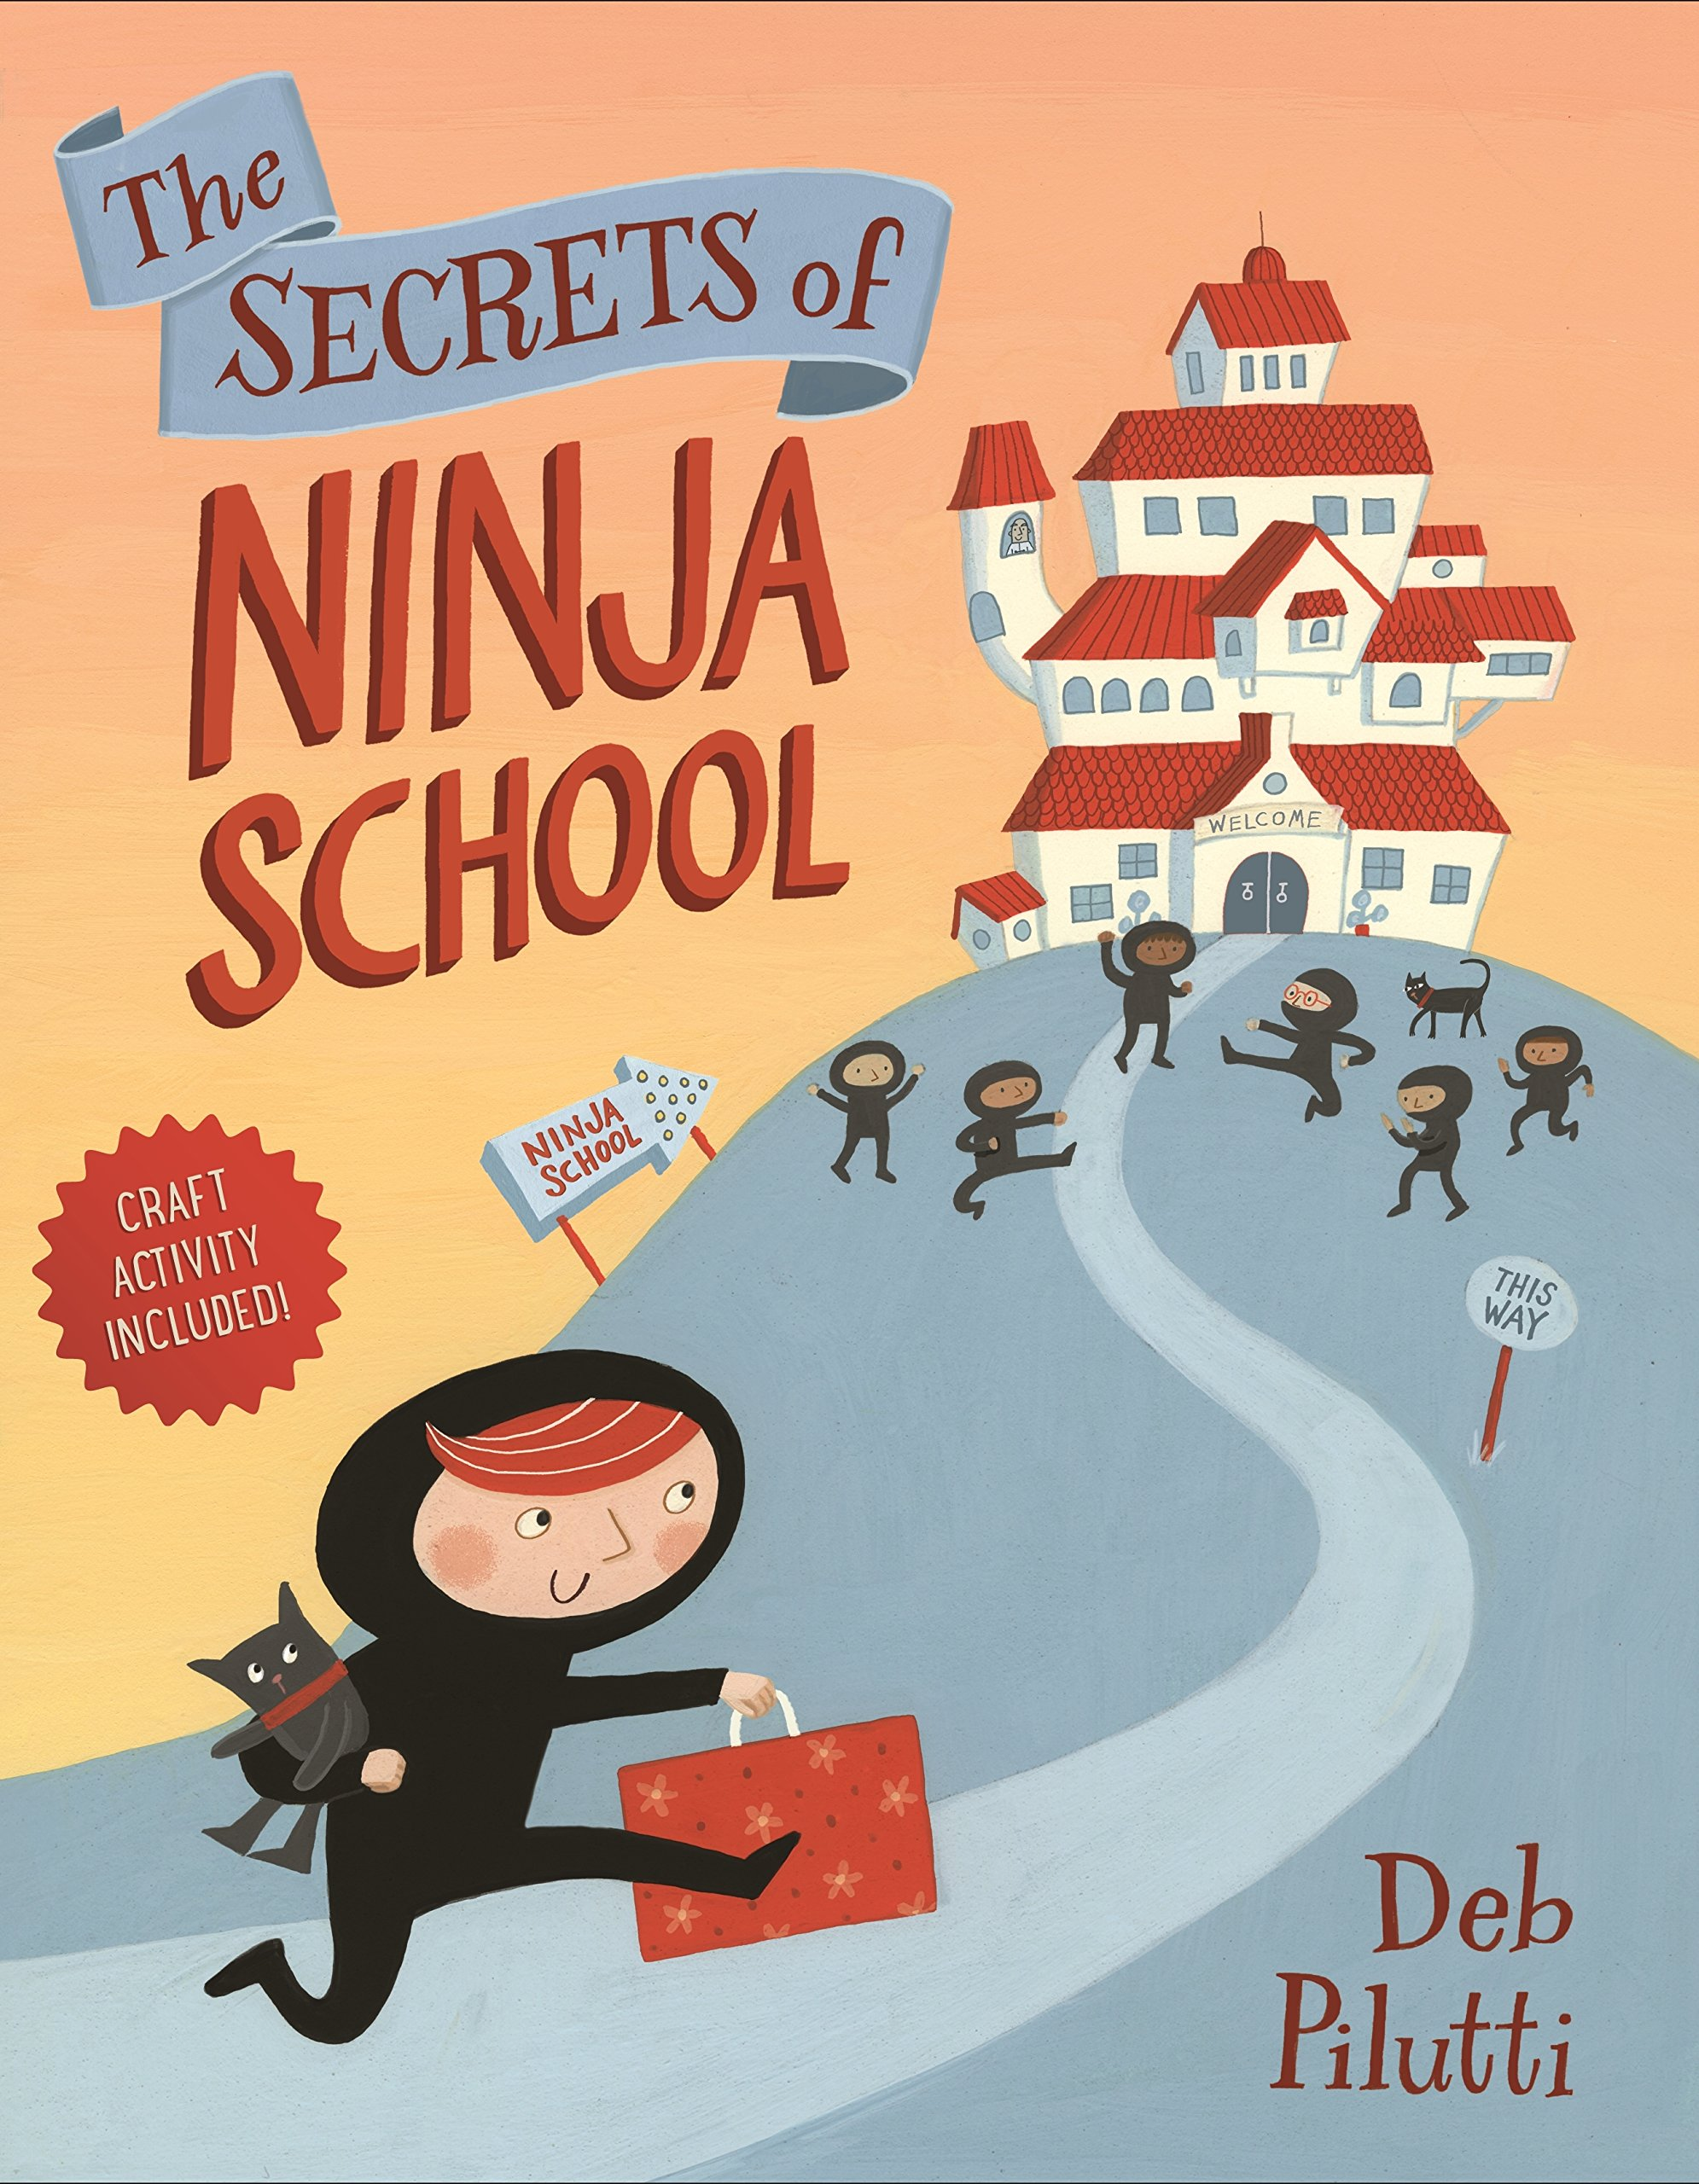 The Secrets of Ninja School: Amazon.es: Deb Pilutti: Libros ...